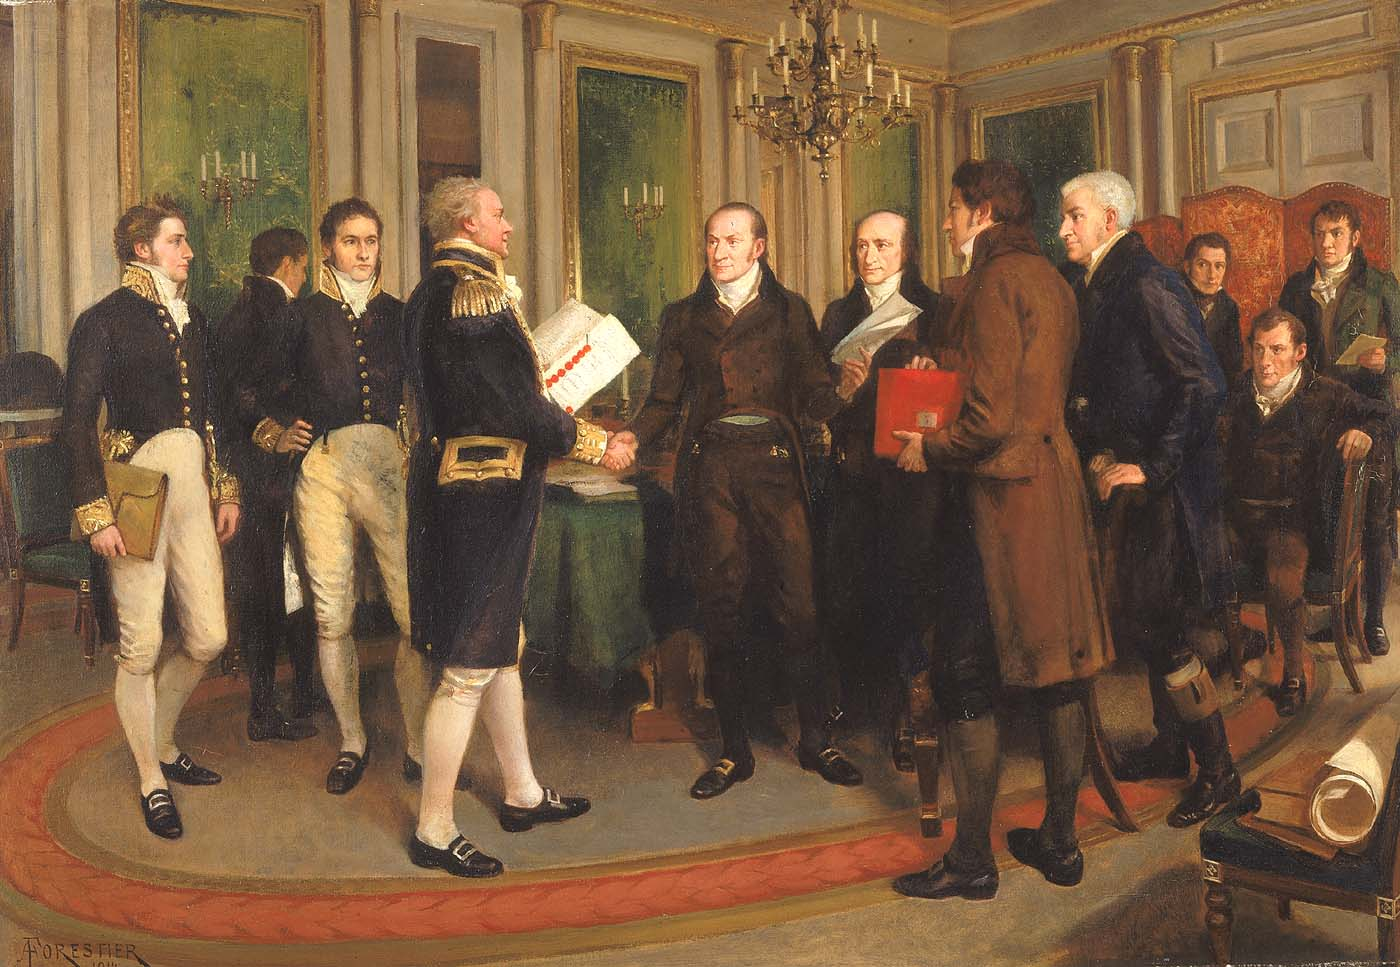 Signing_of_Treaty_of_Ghent_(1812) I wish to recall peace much more than war